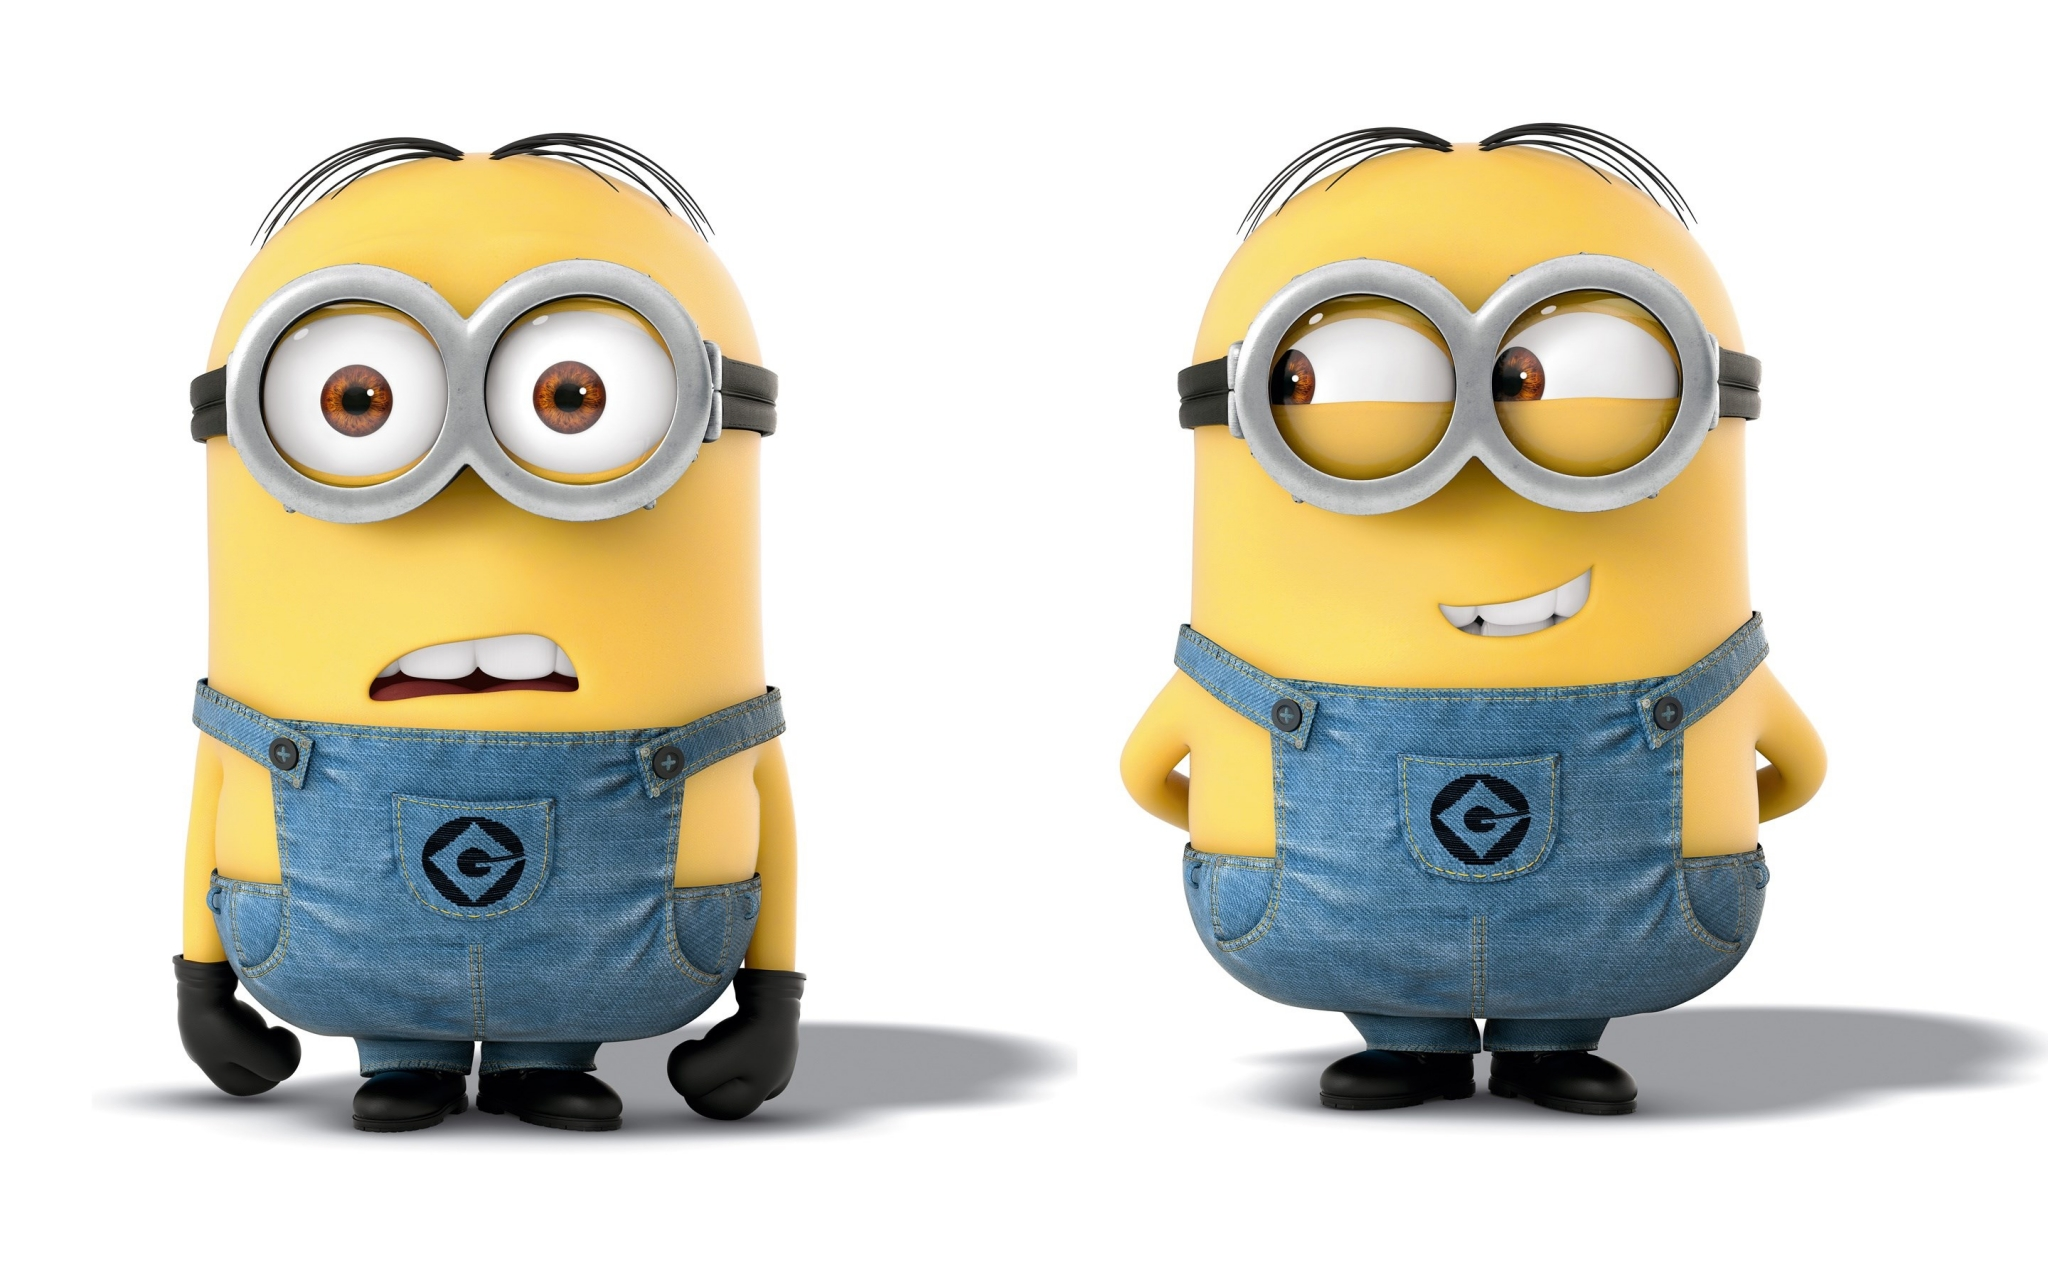 minion-pack-1080p-hd-wallpaper-wpc9007673